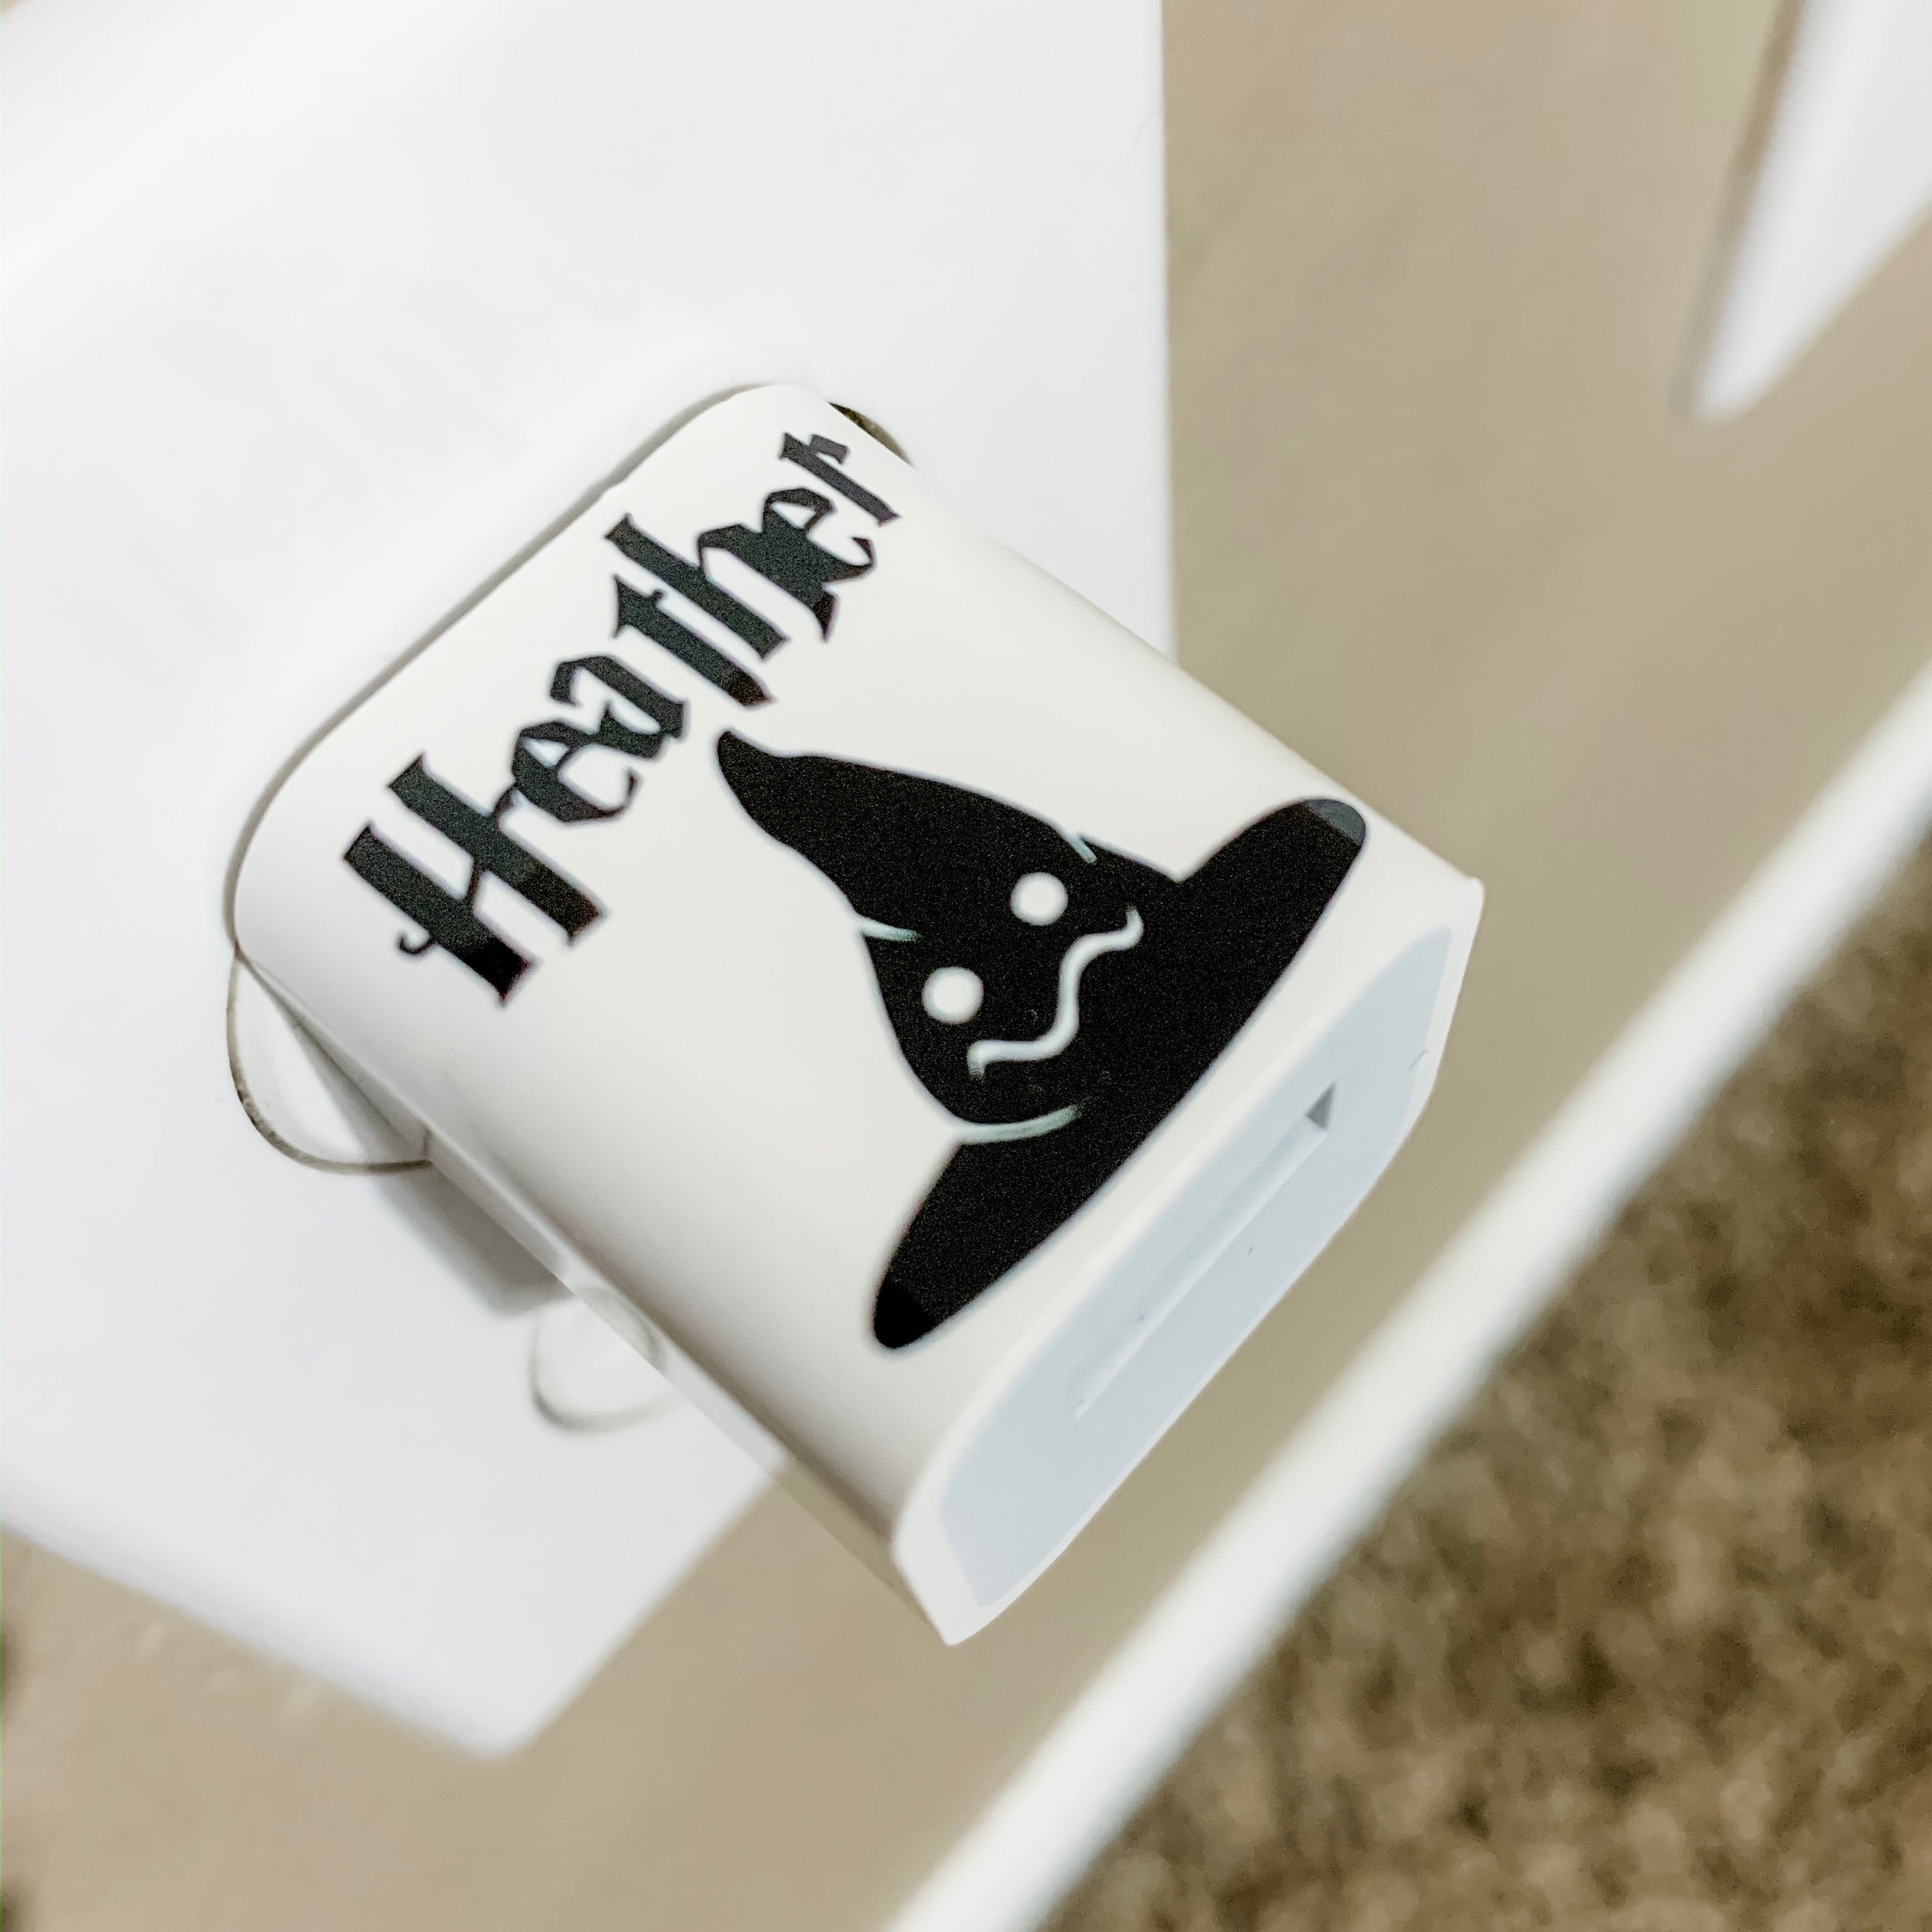 Harry Potter Personalized USB Wall Phone Charger